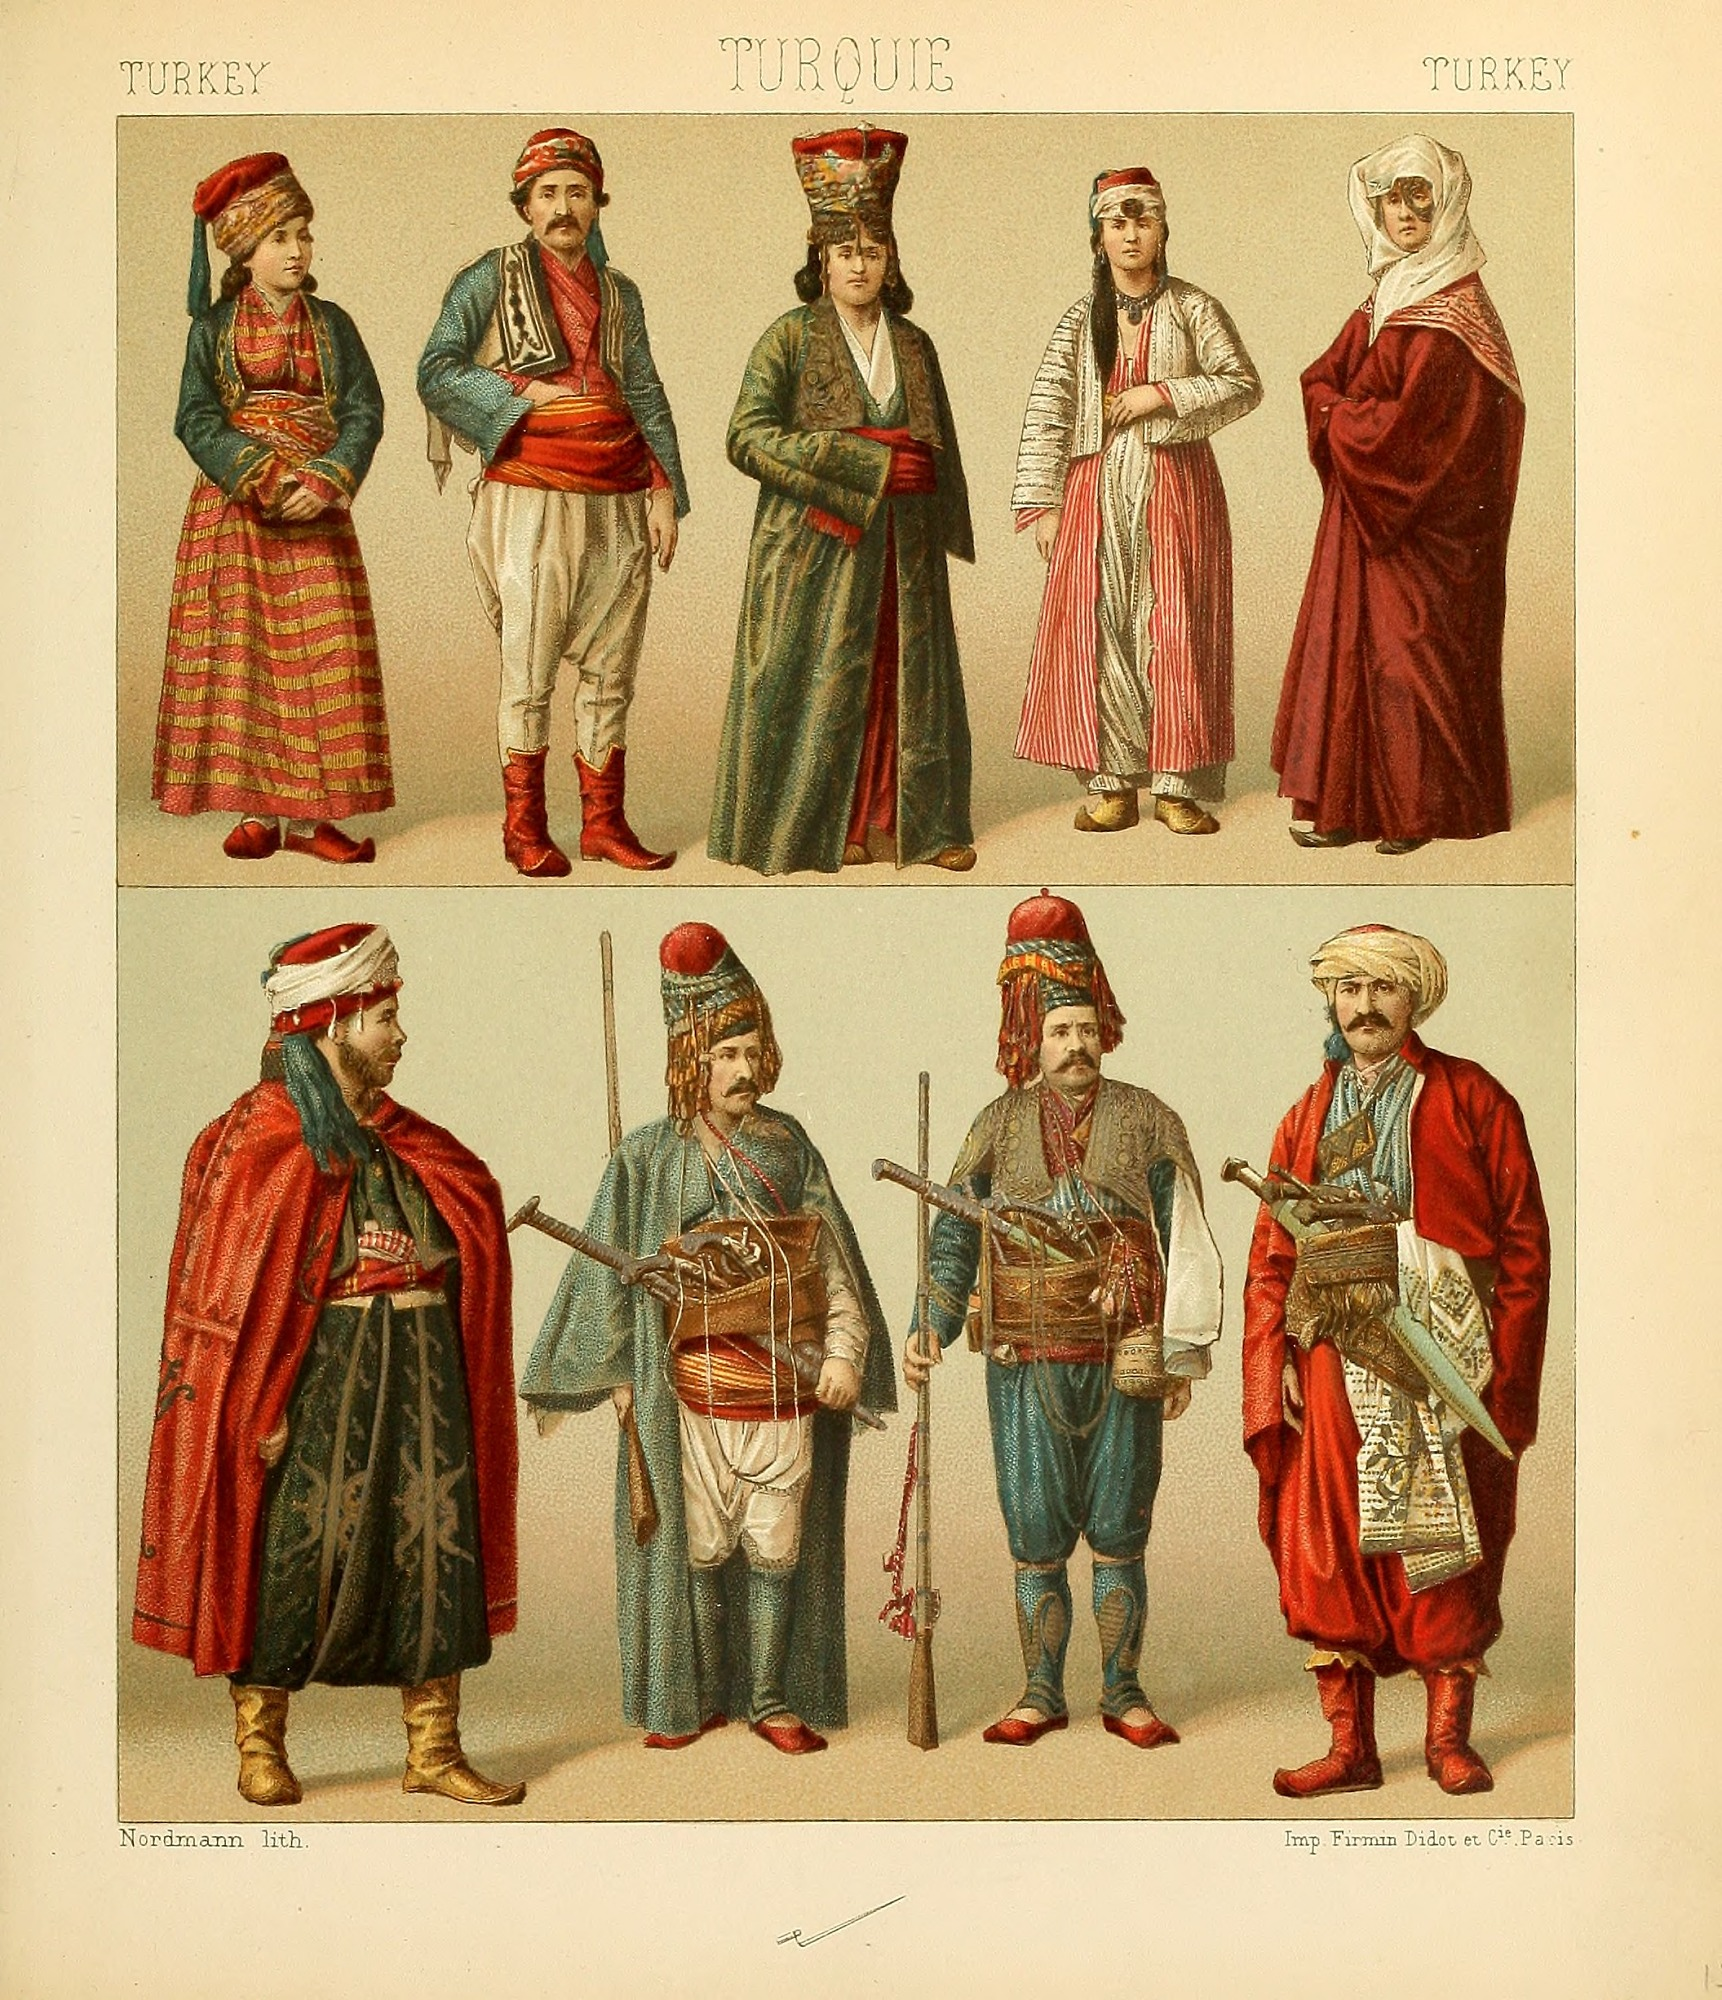 Turkish costumes from Turkish costumes.